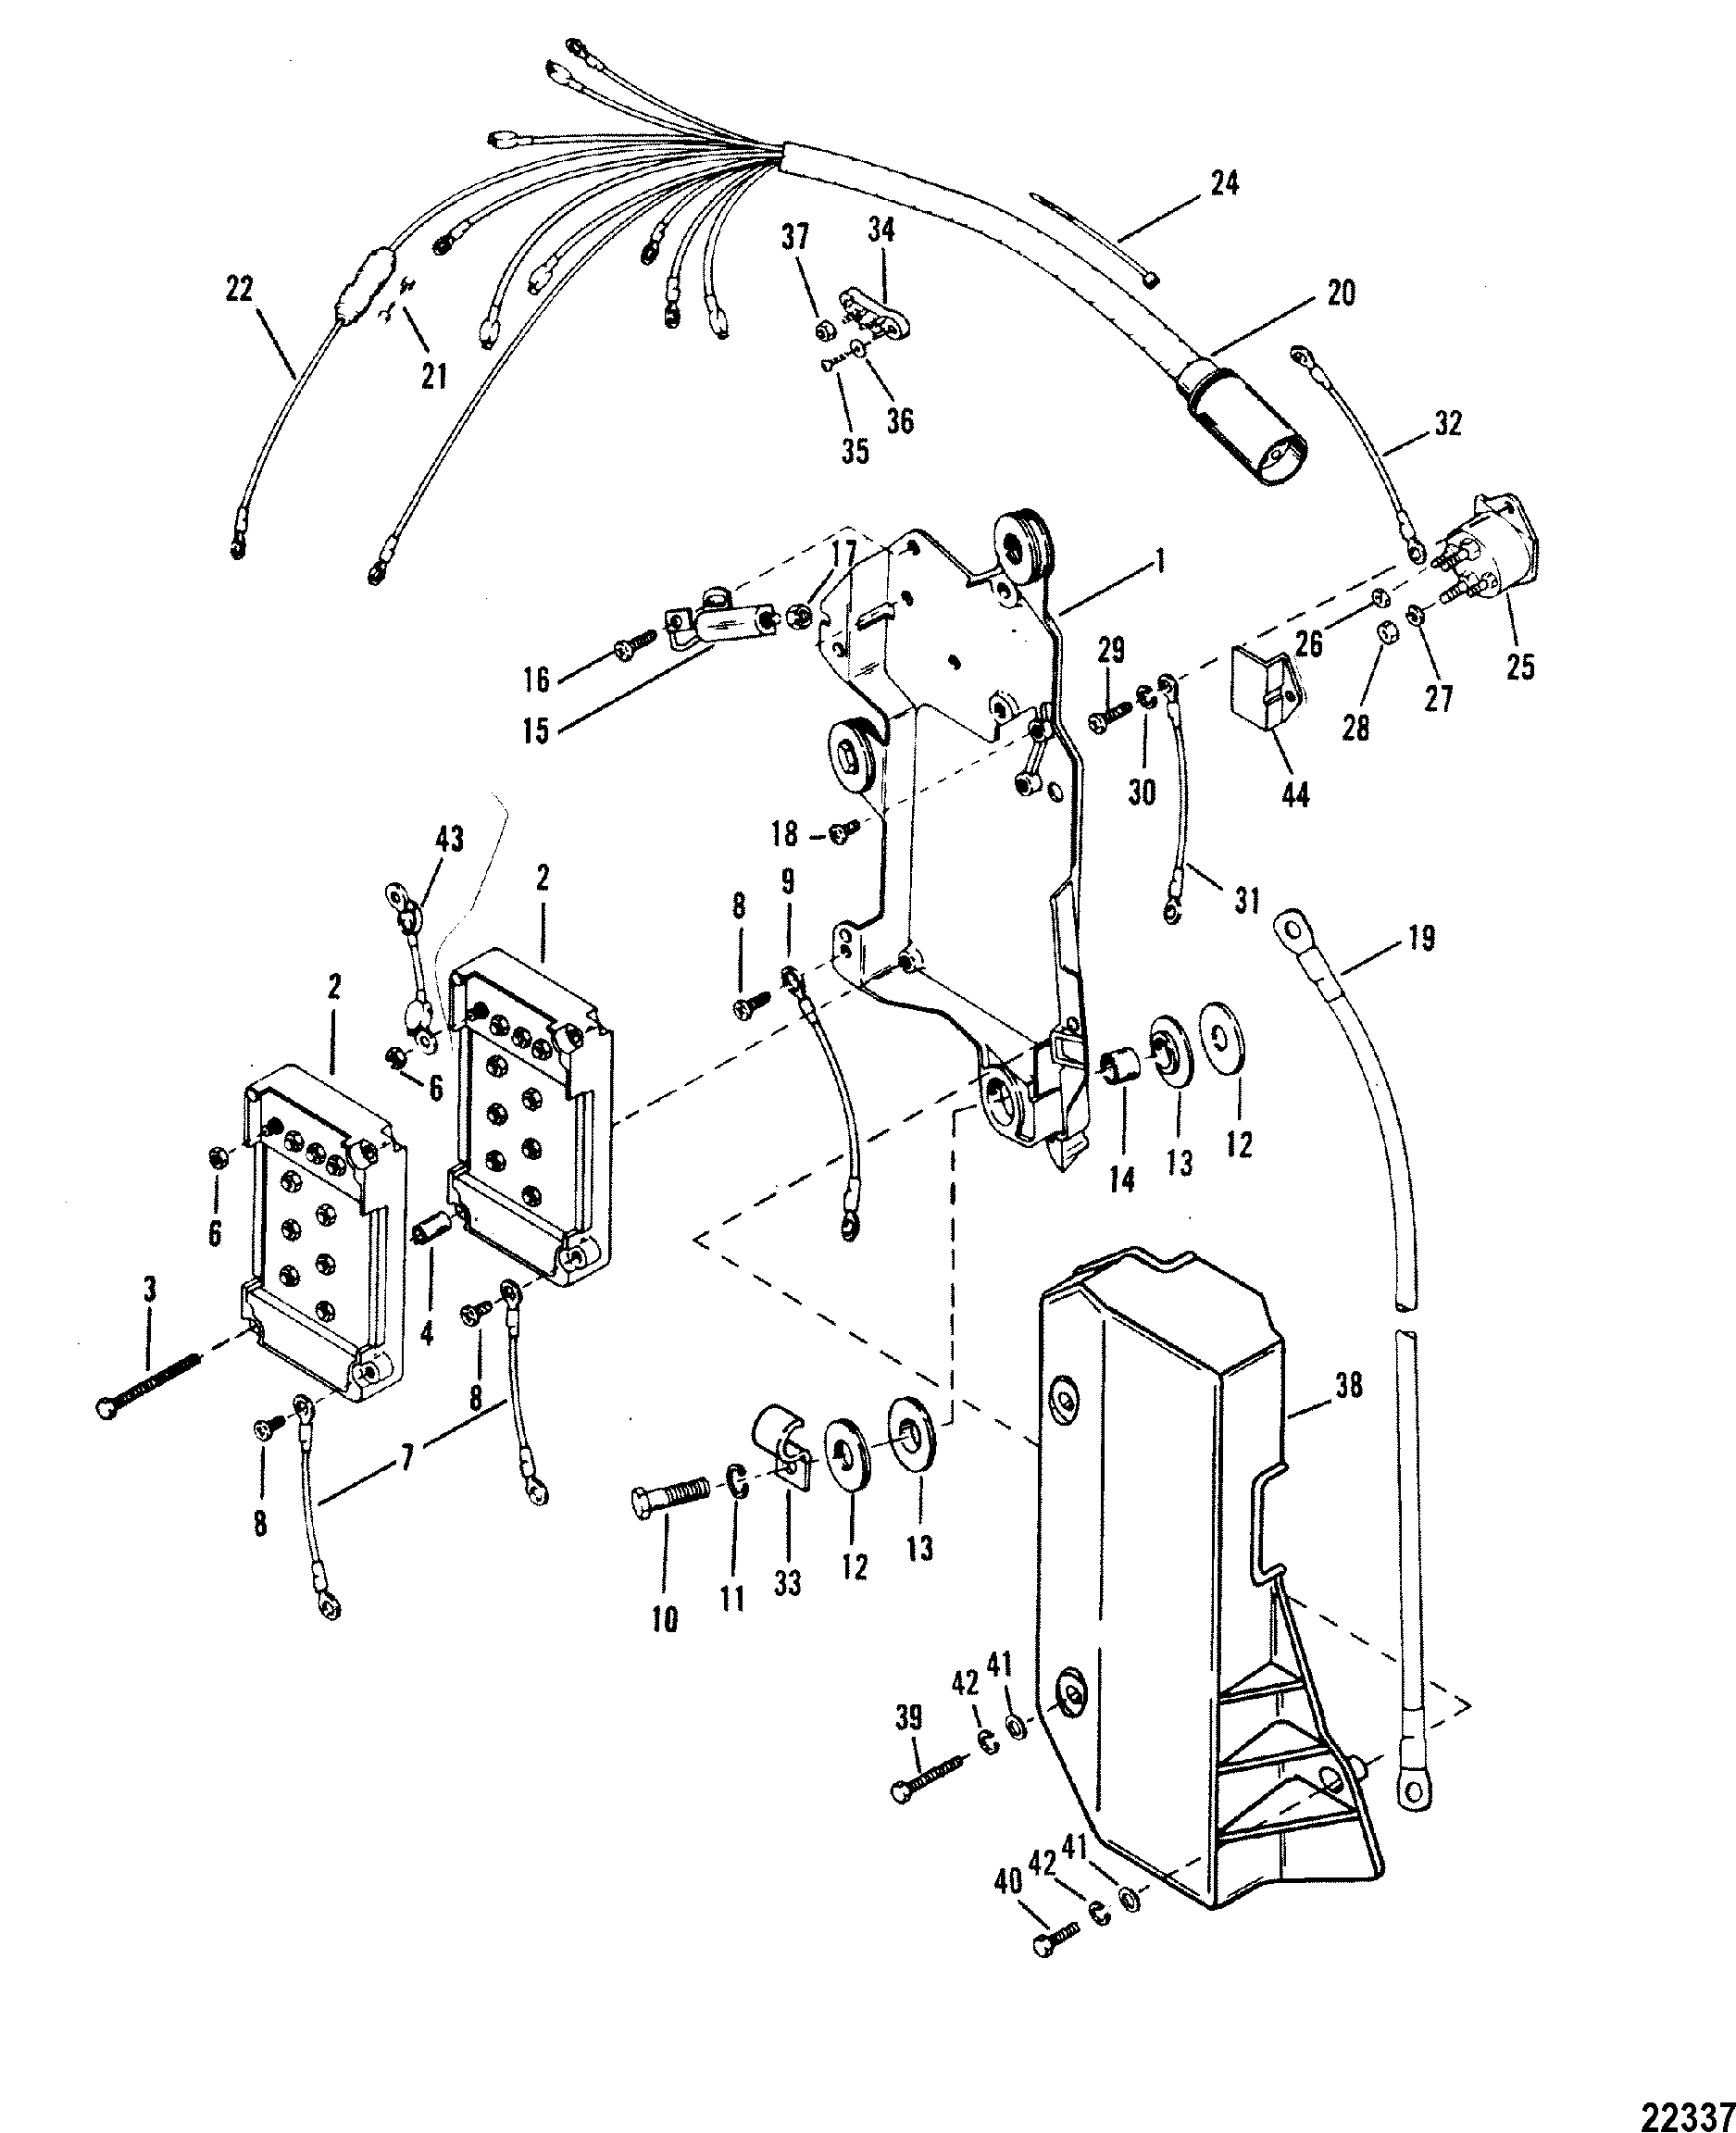 Wiring Harness Starter Solenoid For Mariner Mercury 175 Xri Mercruiser Trim Sensor Diagram Zoom